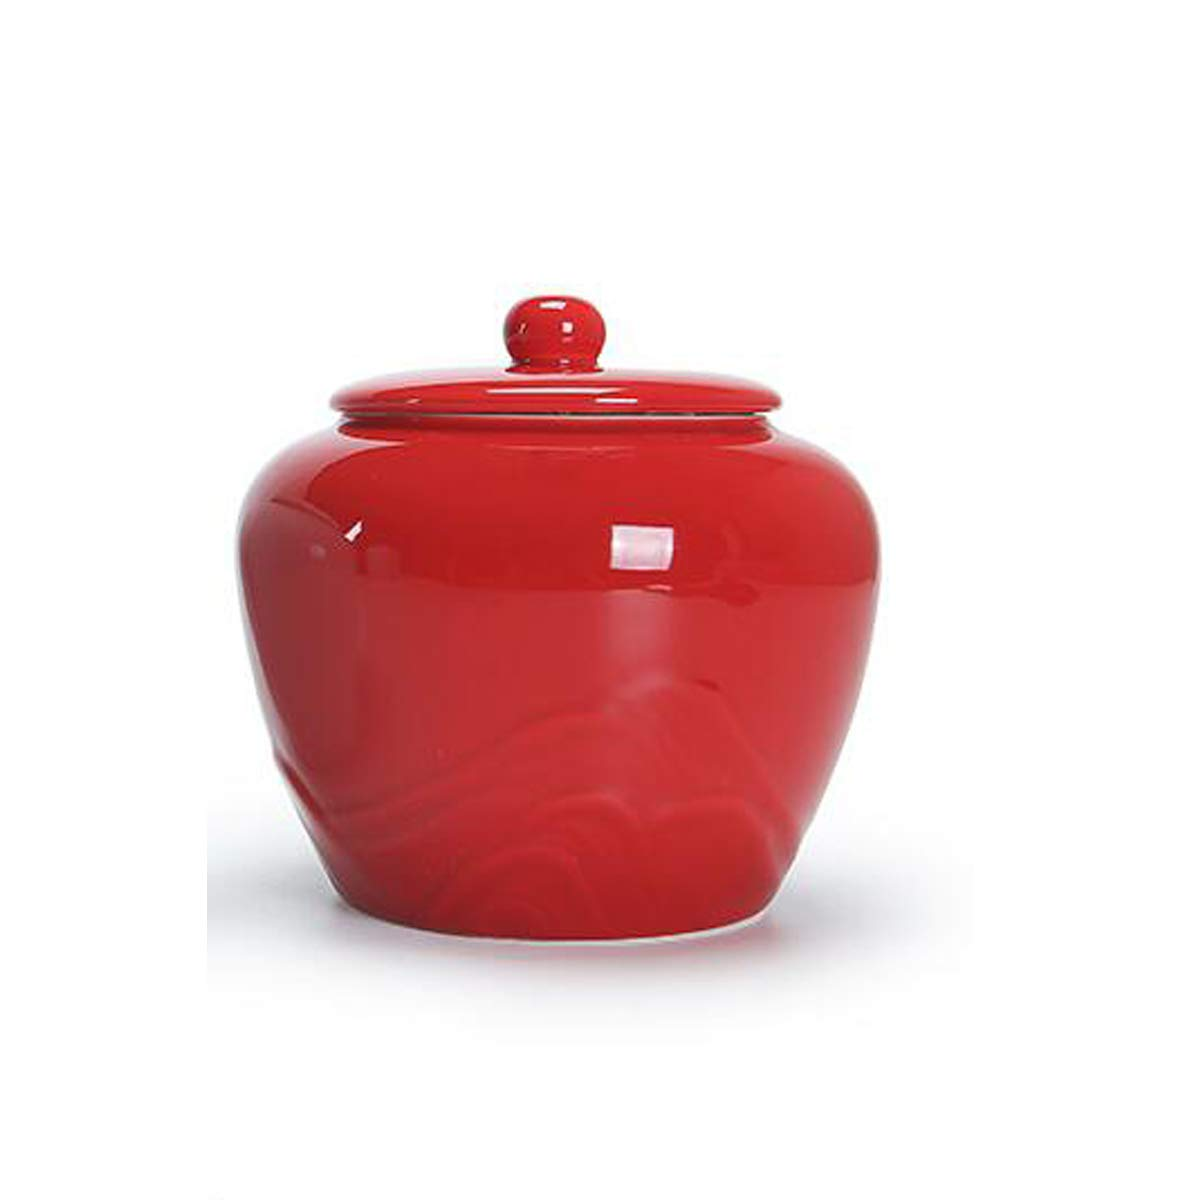 Red 8haowenju Memorials,Pet Urn,Cremation Urns for Pets,Functional Urn,Ceramic Sealed,Moisture Proof,Keepsake Box for Dogs and Cats The Latest Style, Multi-Function (color   Red)